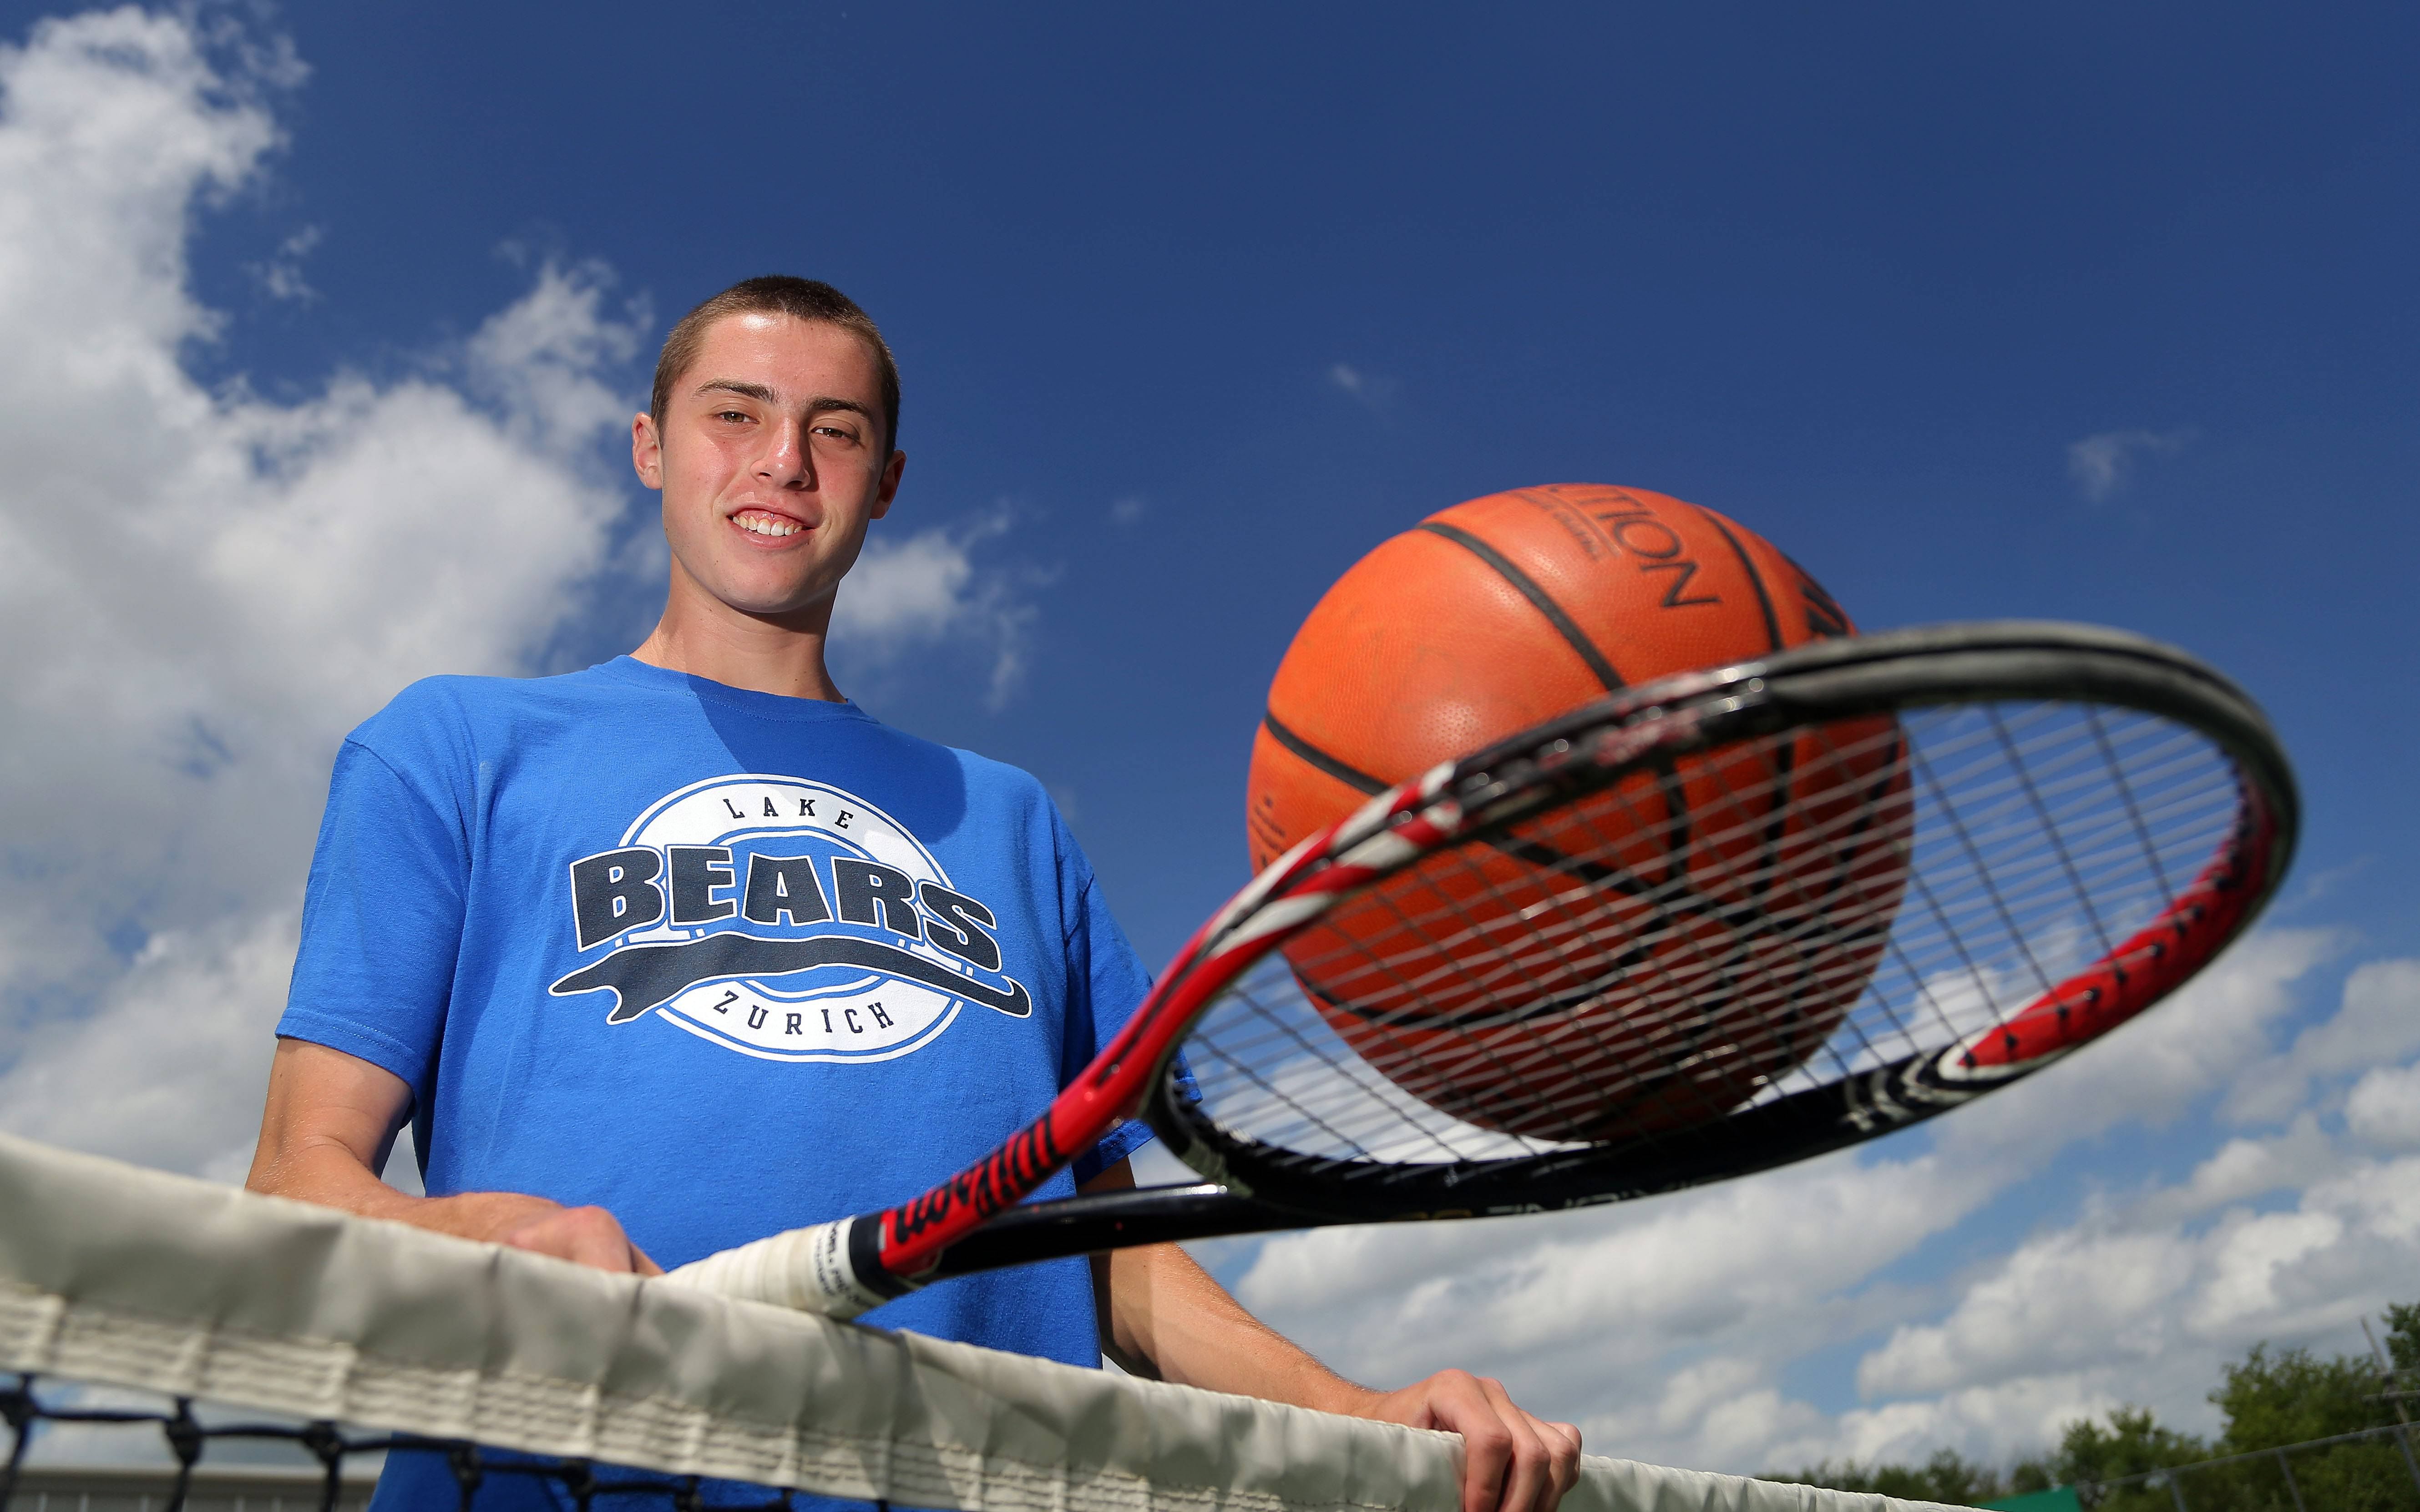 Dave Brown competed in basketball, tennis and cross country this school year for Lake Zurich High School.